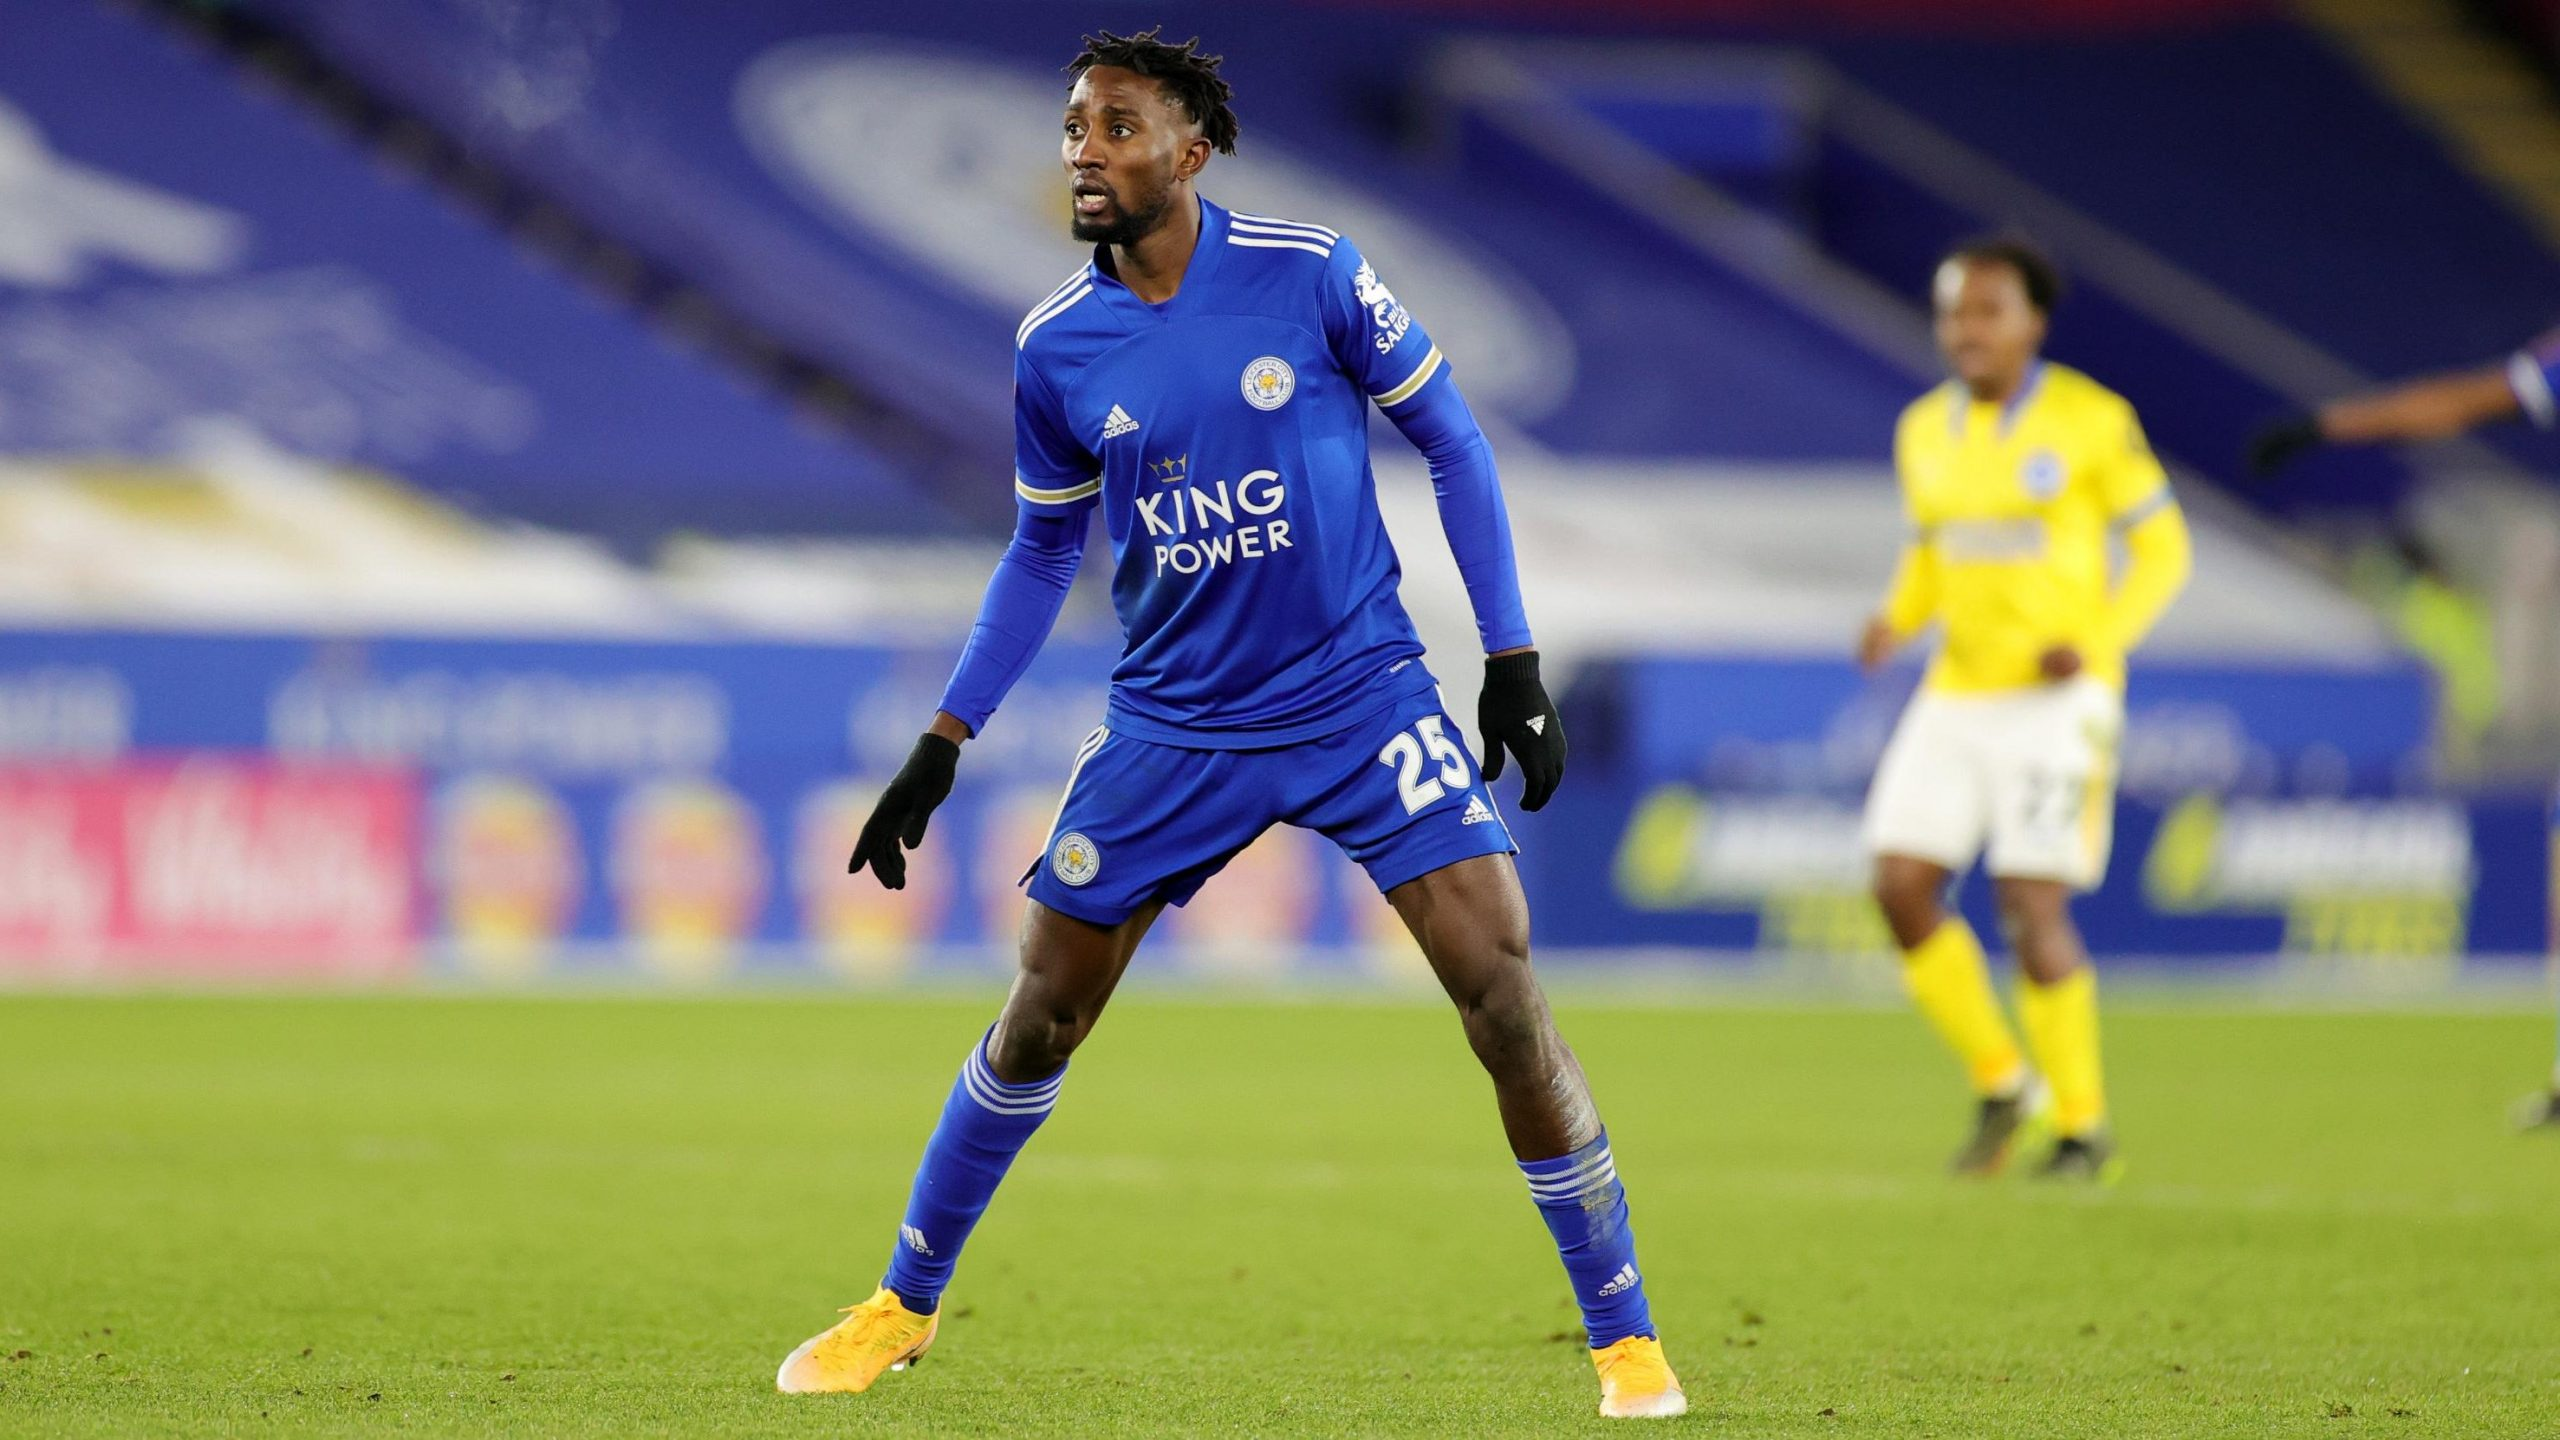 Wilfred Ndidi is one of the best players in the world - Brendan Rodgers